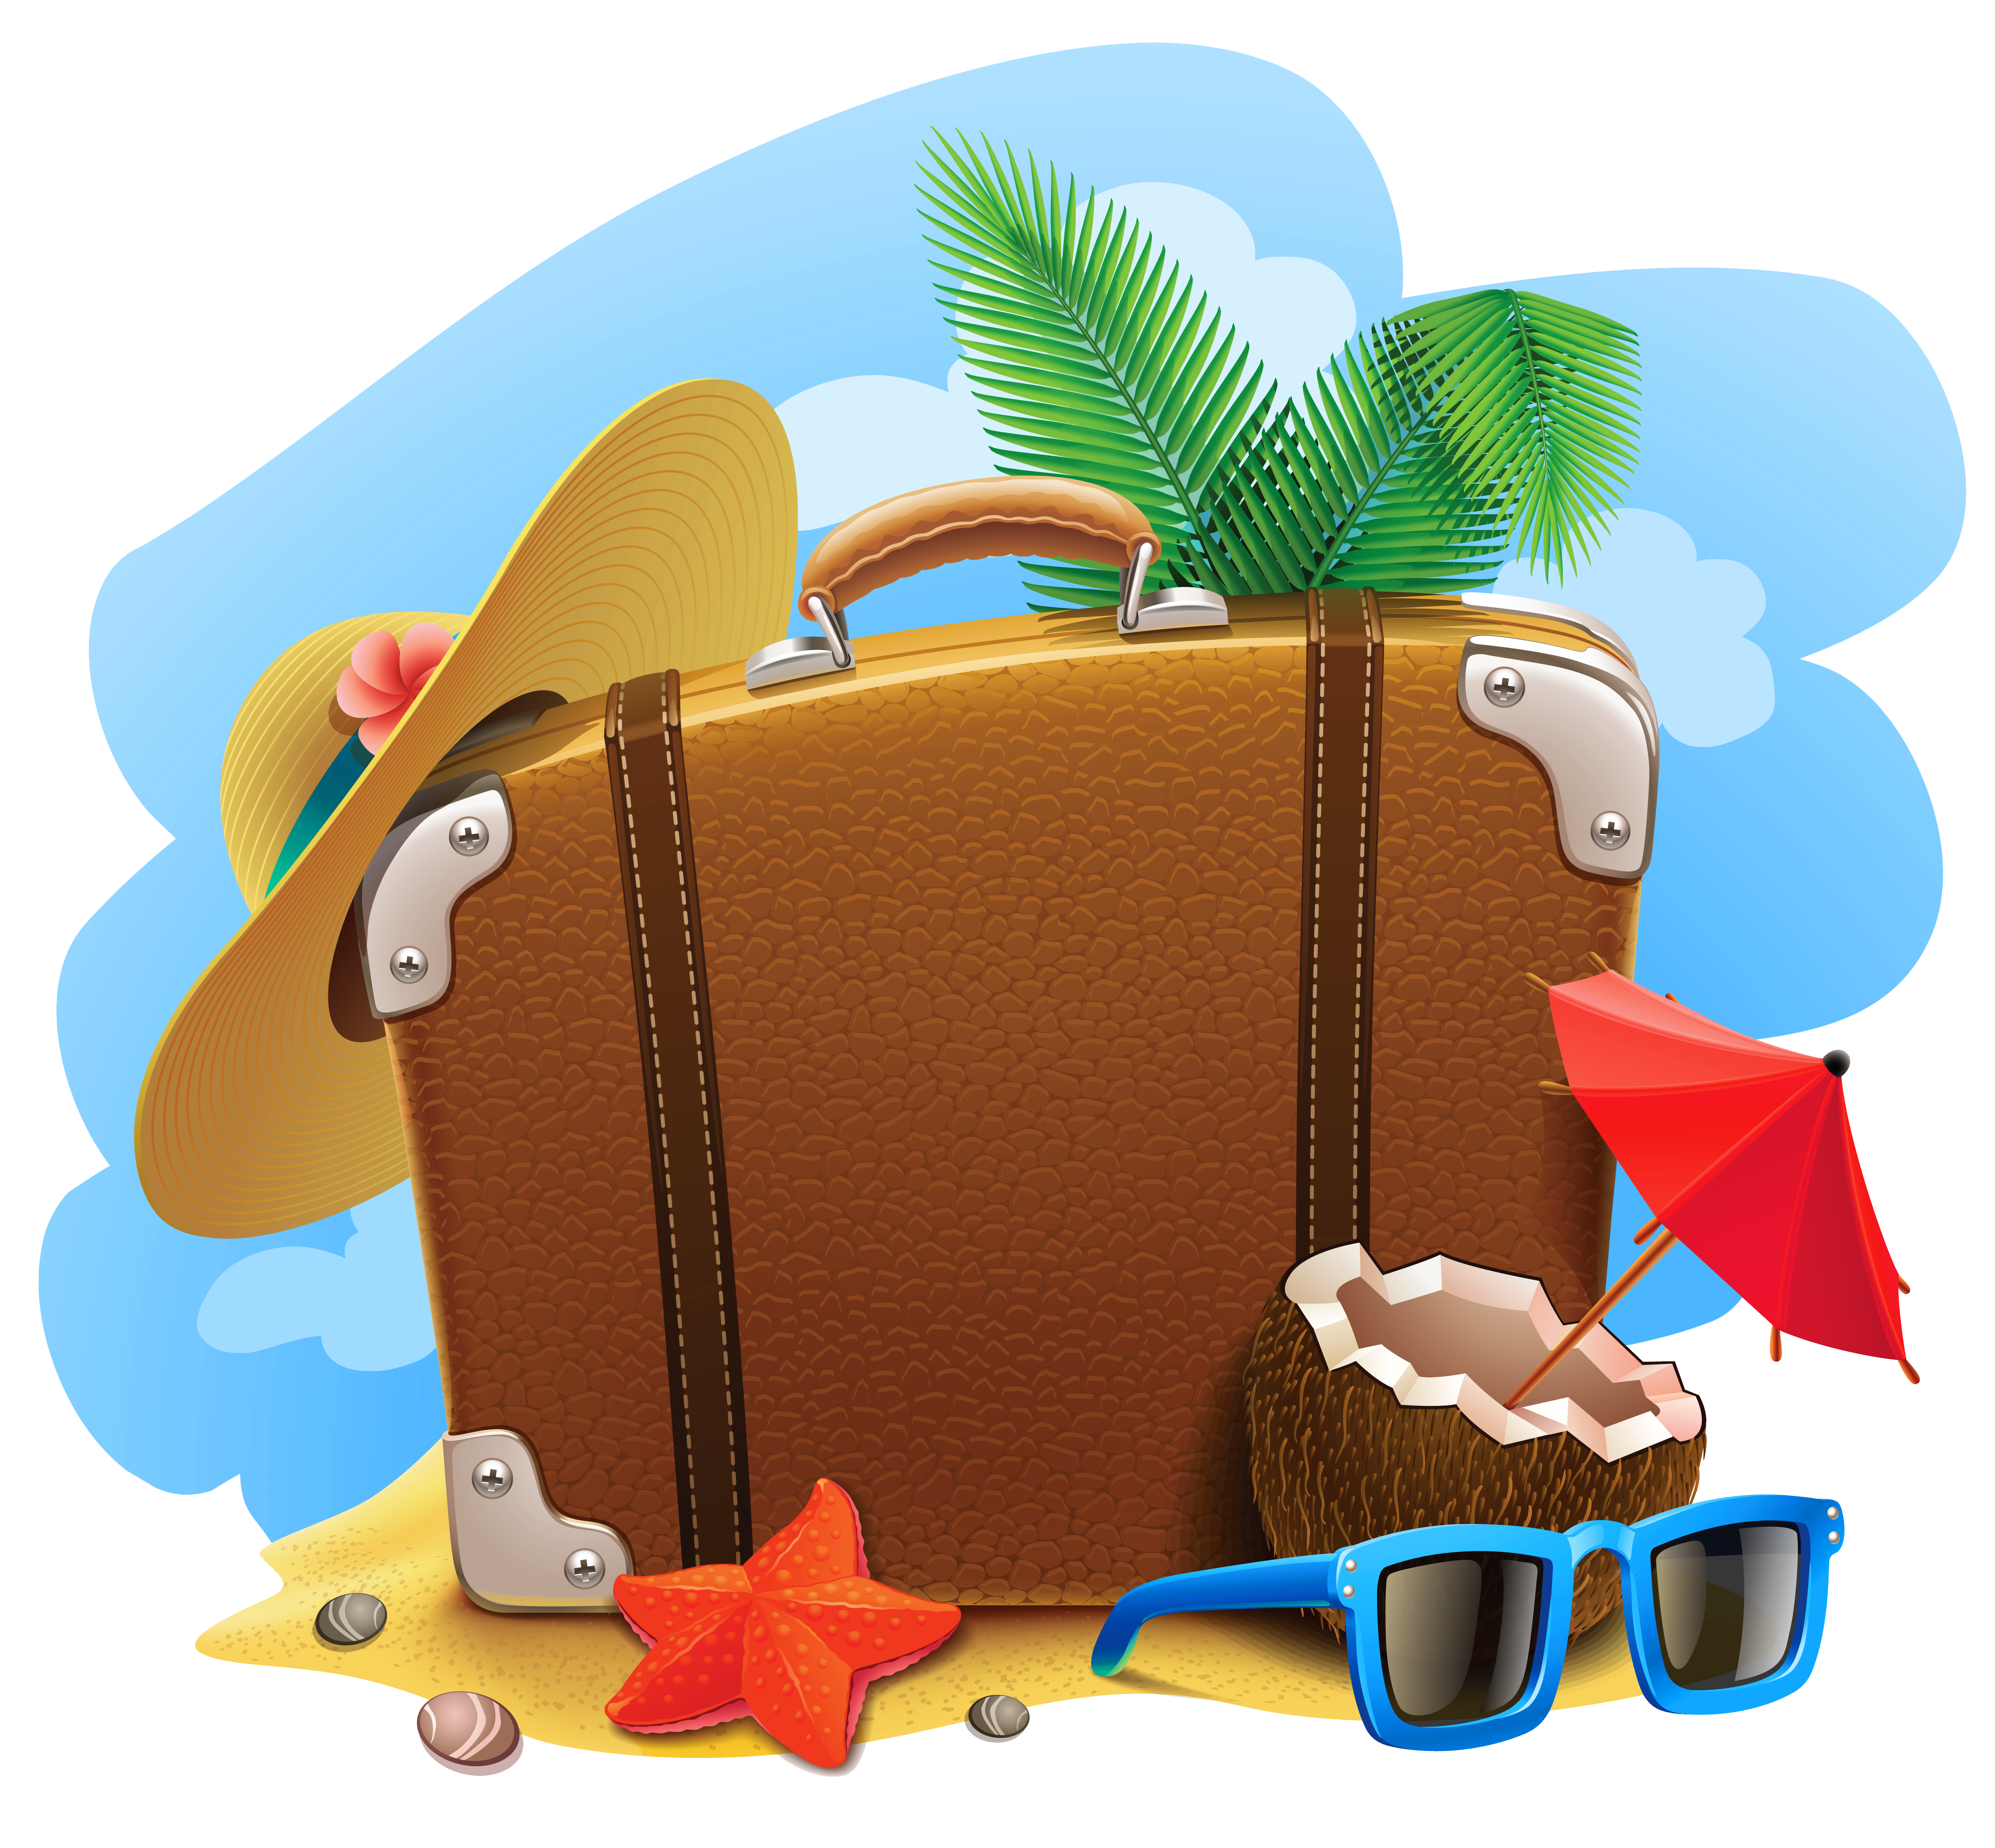 Leisure travel clipart svg freeuse library Pin by Eleen Wu on Cliparts | Clip art, Suitcase, Travel, leisure svg freeuse library